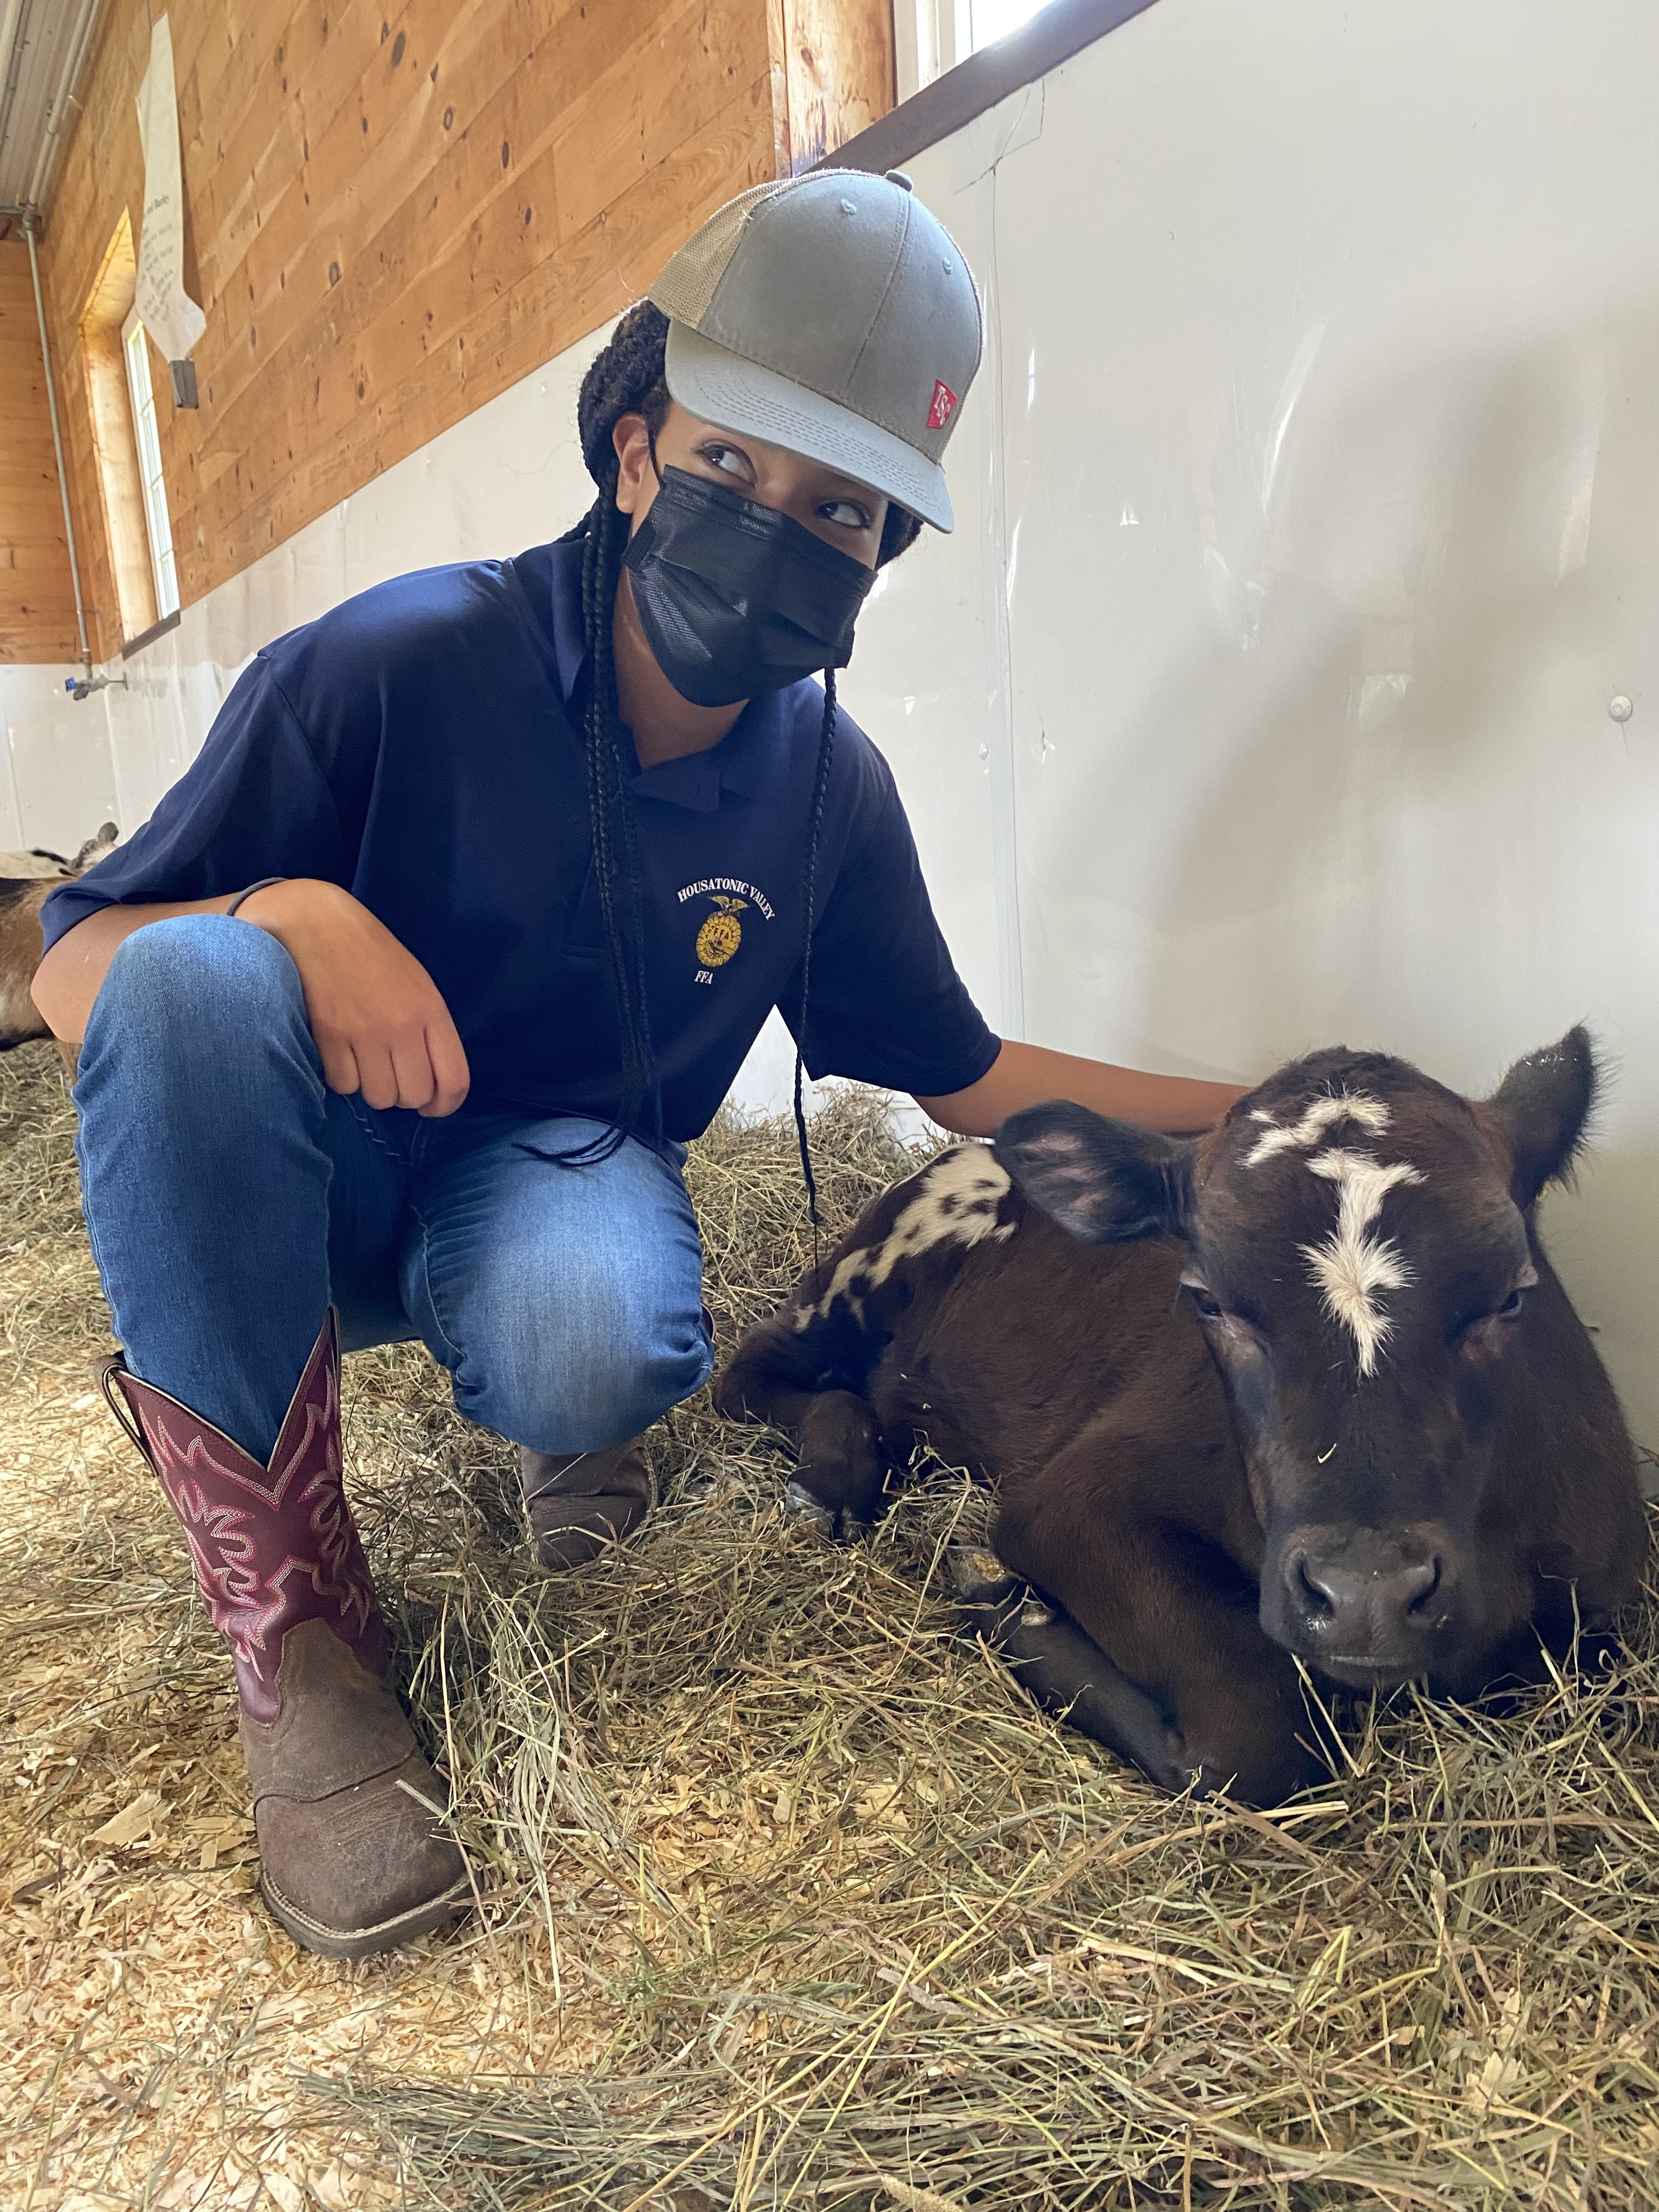 <strong>Kori Ann Wiggins from Housatonic Valley Regional High School was in the FFA barn on Saturday, Sept. 4, during the Goshen Fair, helping introduce youngsters to some of the baby animals in the students' petting zoo. <em>Photo by Cynthia Hochswender</em></strong>